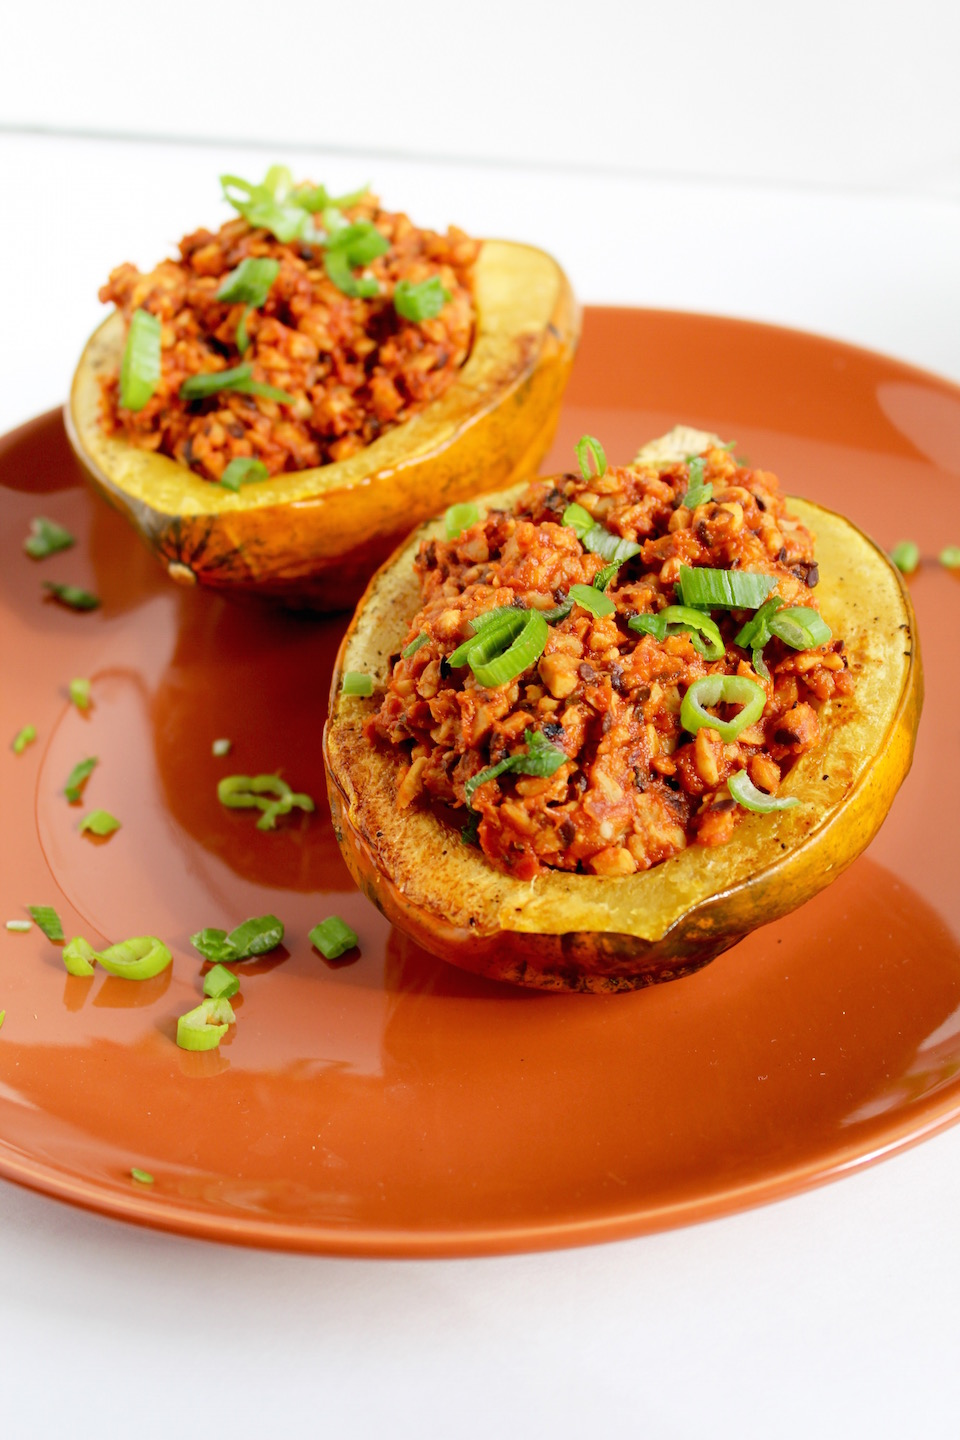 Smoky Tempeh Stuffed Acorn Squash Served On Orange Plate